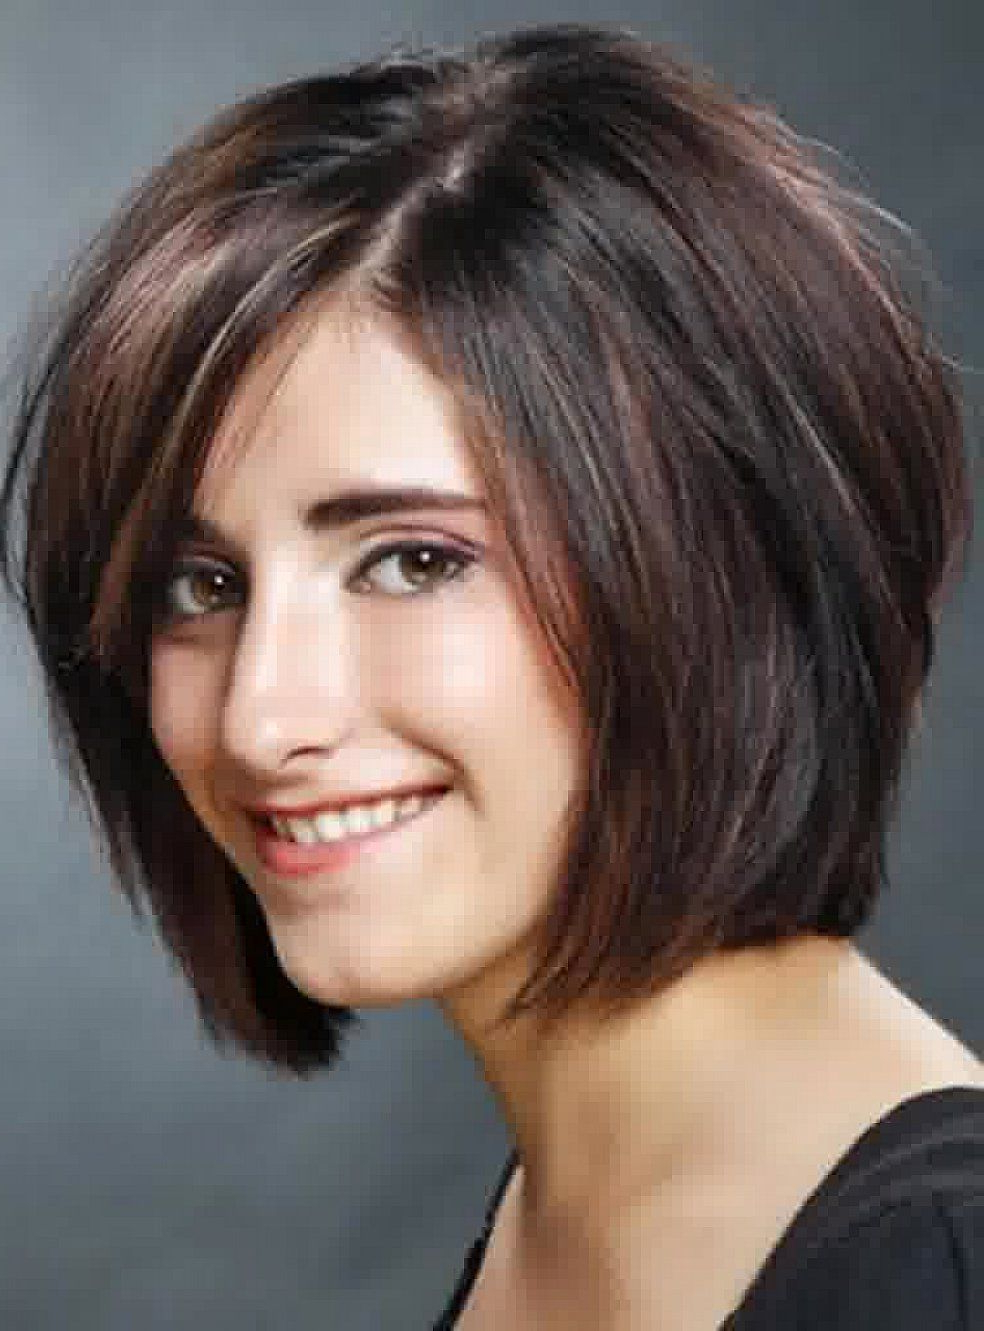 The Creation Of Short Hairstyles For Square Faces: Very Short Pertaining To Short Hairstyles For A Square Face (View 17 of 25)